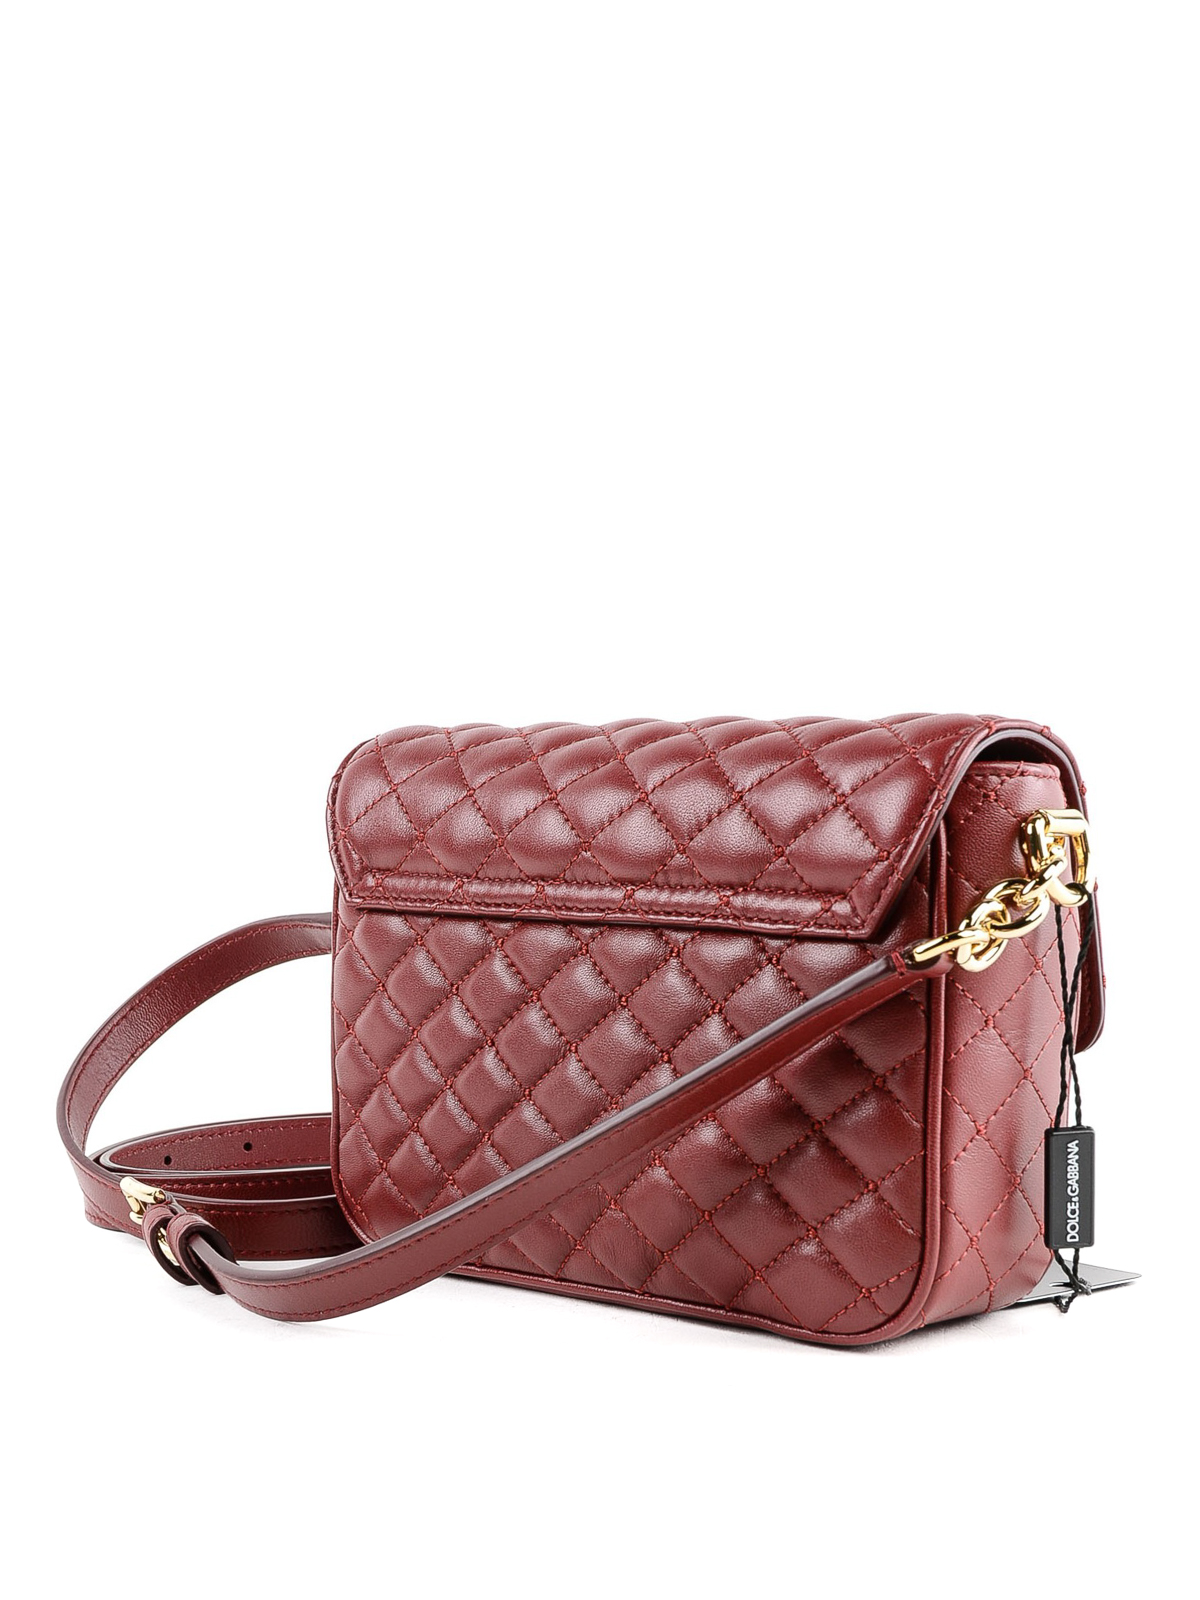 aa5296392d iKRIX DOLCE   GABBANA  shoulder bags - Quilted leather DG Millennials red  small bag